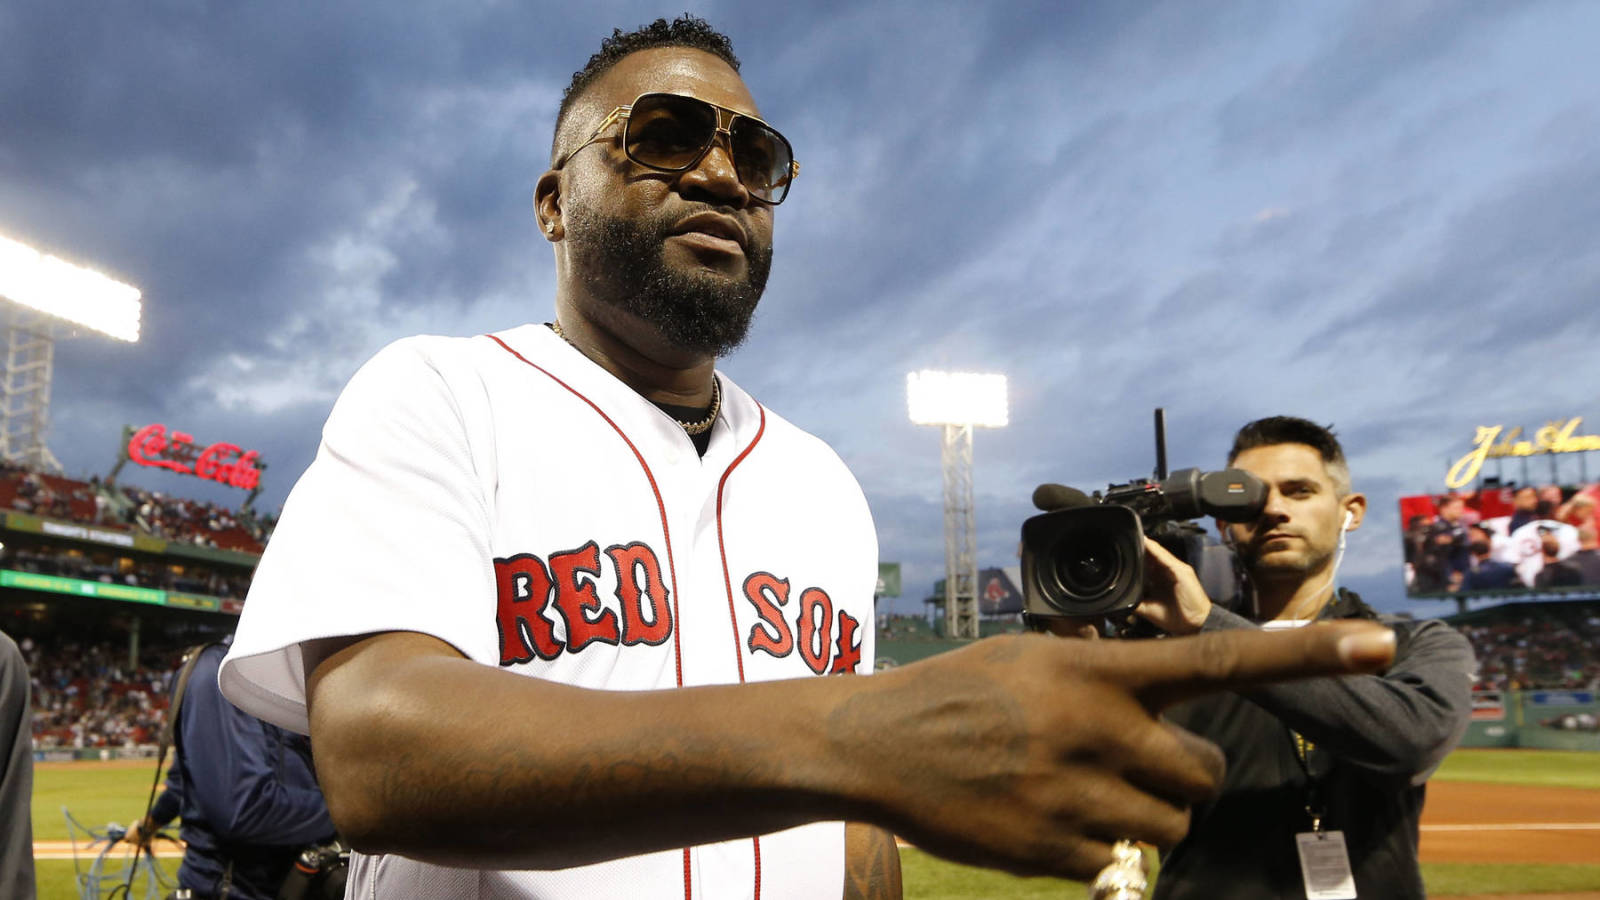 Photo of Restraining order issued against Red Sox legend David Ortiz in Dominican Republic